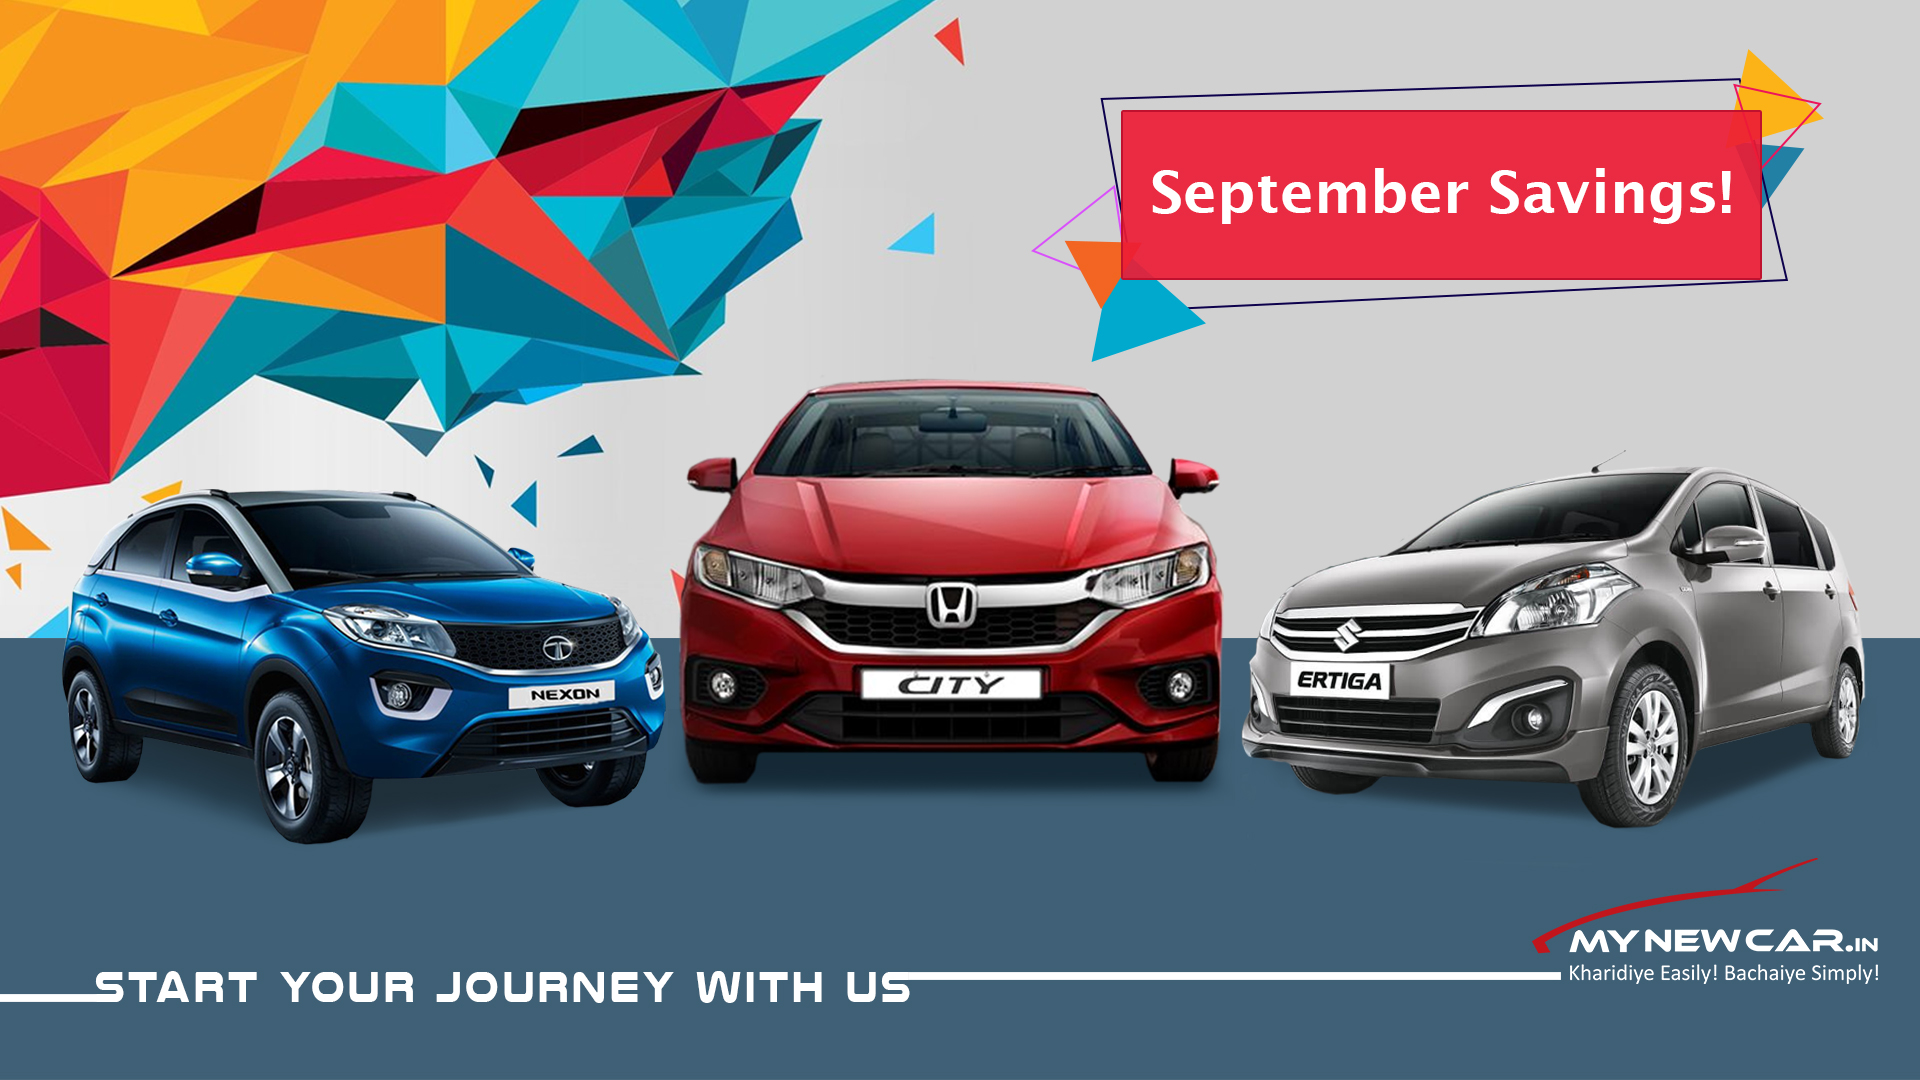 Hot Deals on New Cars in September 2018